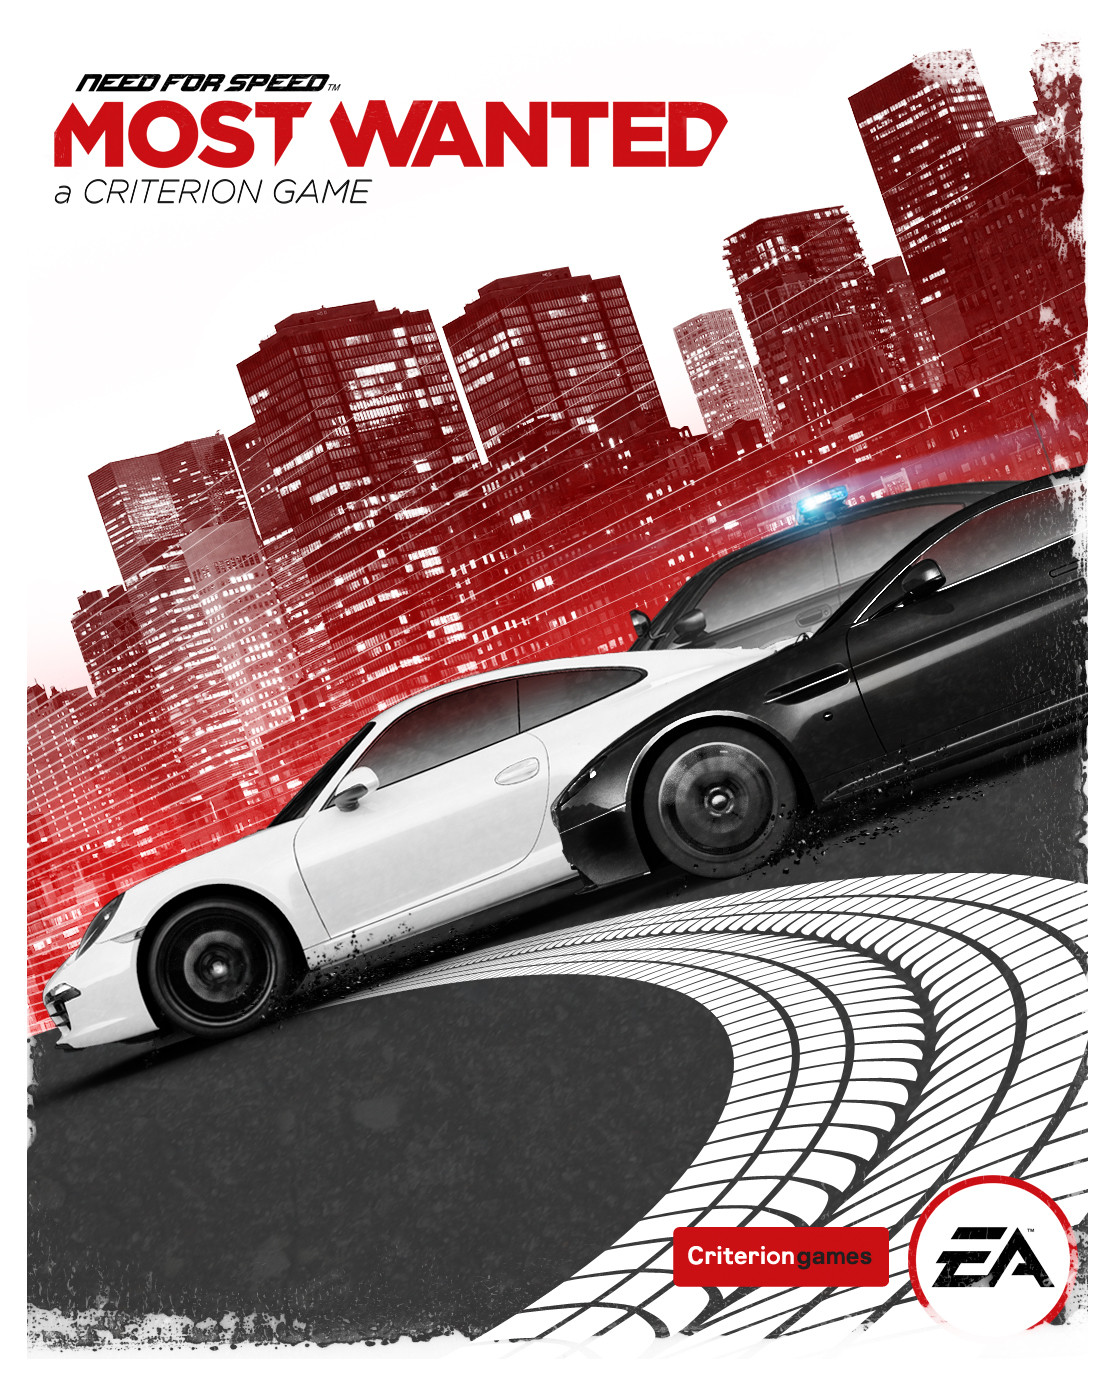 Need for Speed: Most Wanted (2012) | Need for Speed Wiki